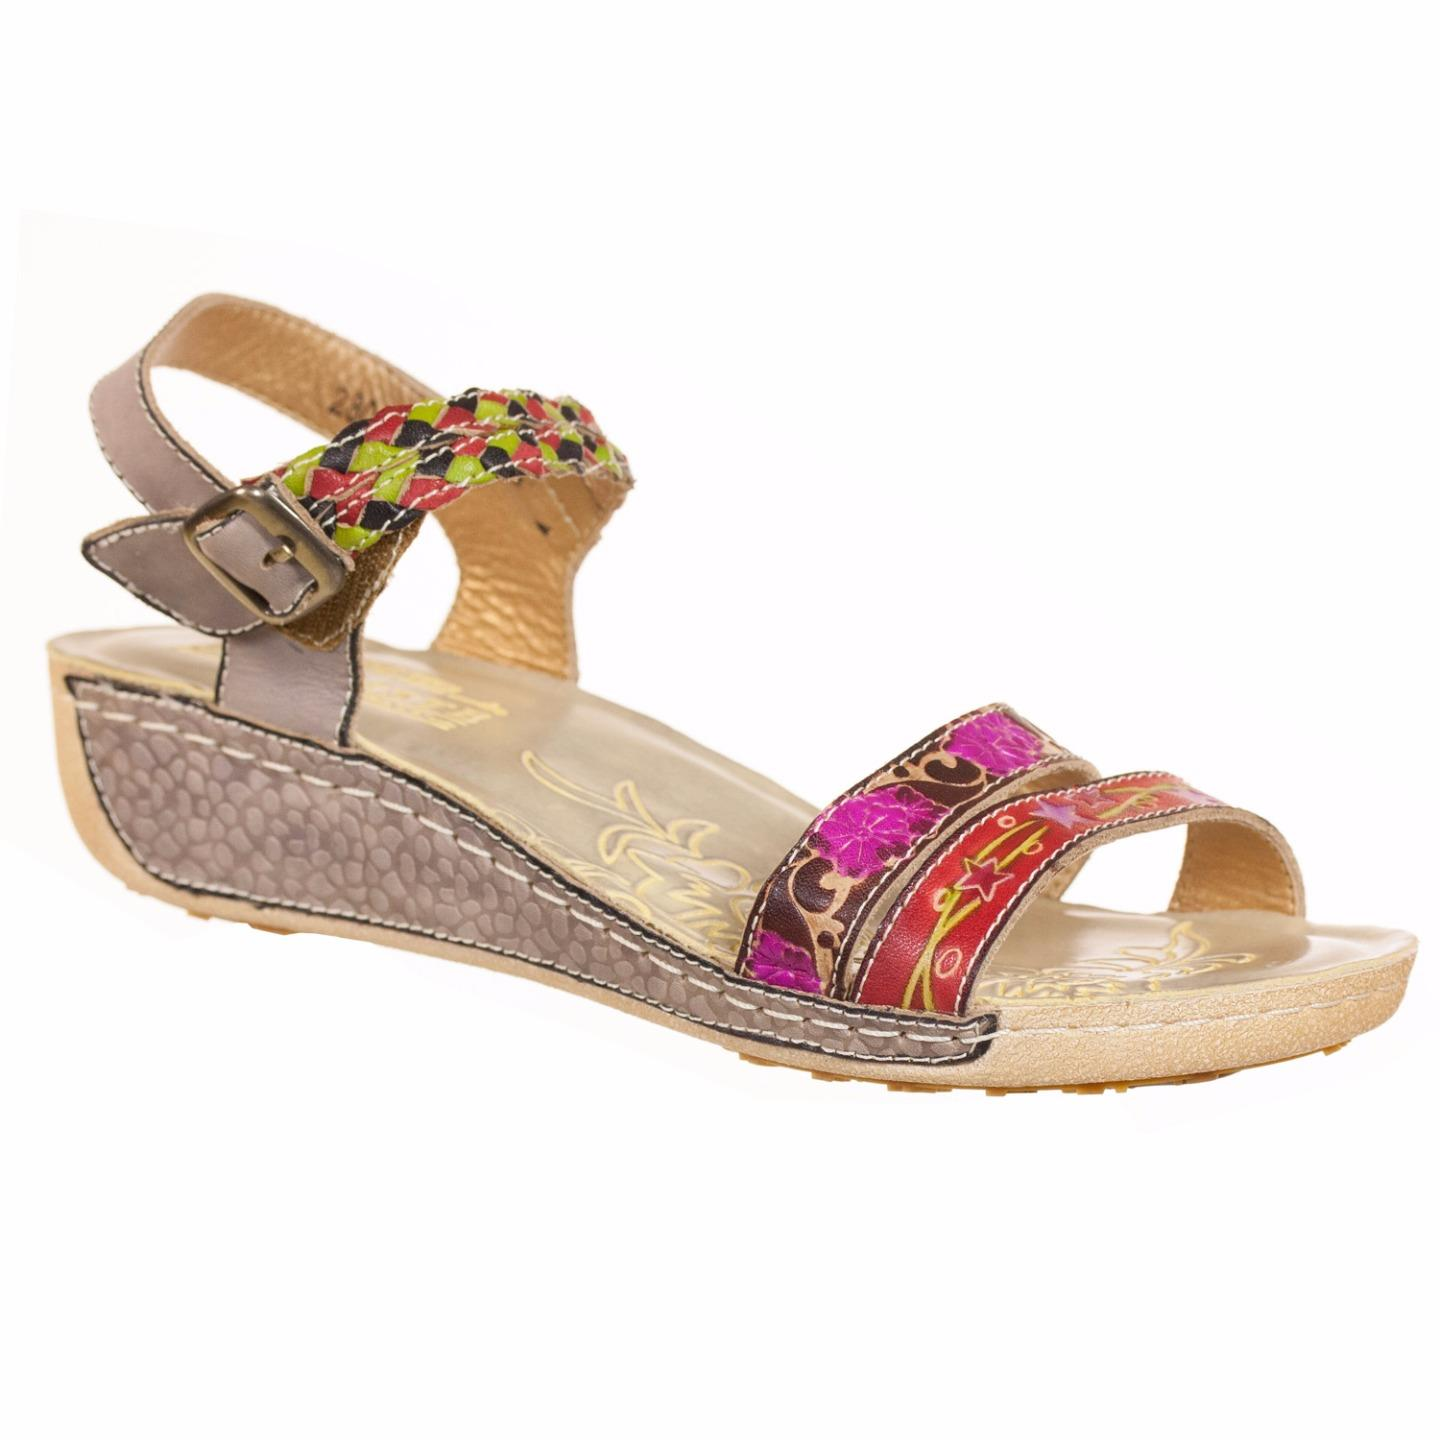 L'Artiste Collection By Spring Step Women's Amadora Sandal Grey Multi EU 37 US 7 by Spring Step